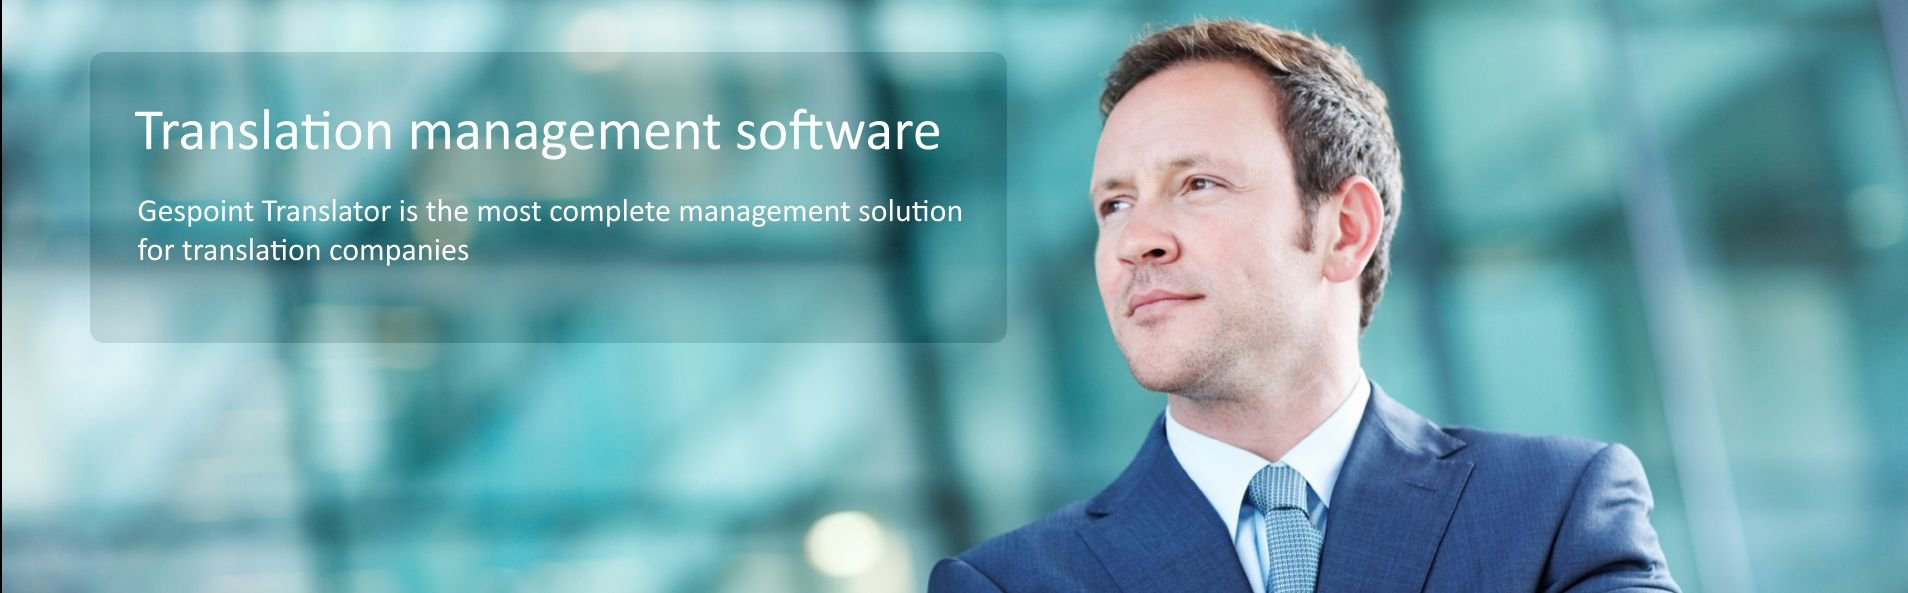 Complete management solution for translation companies